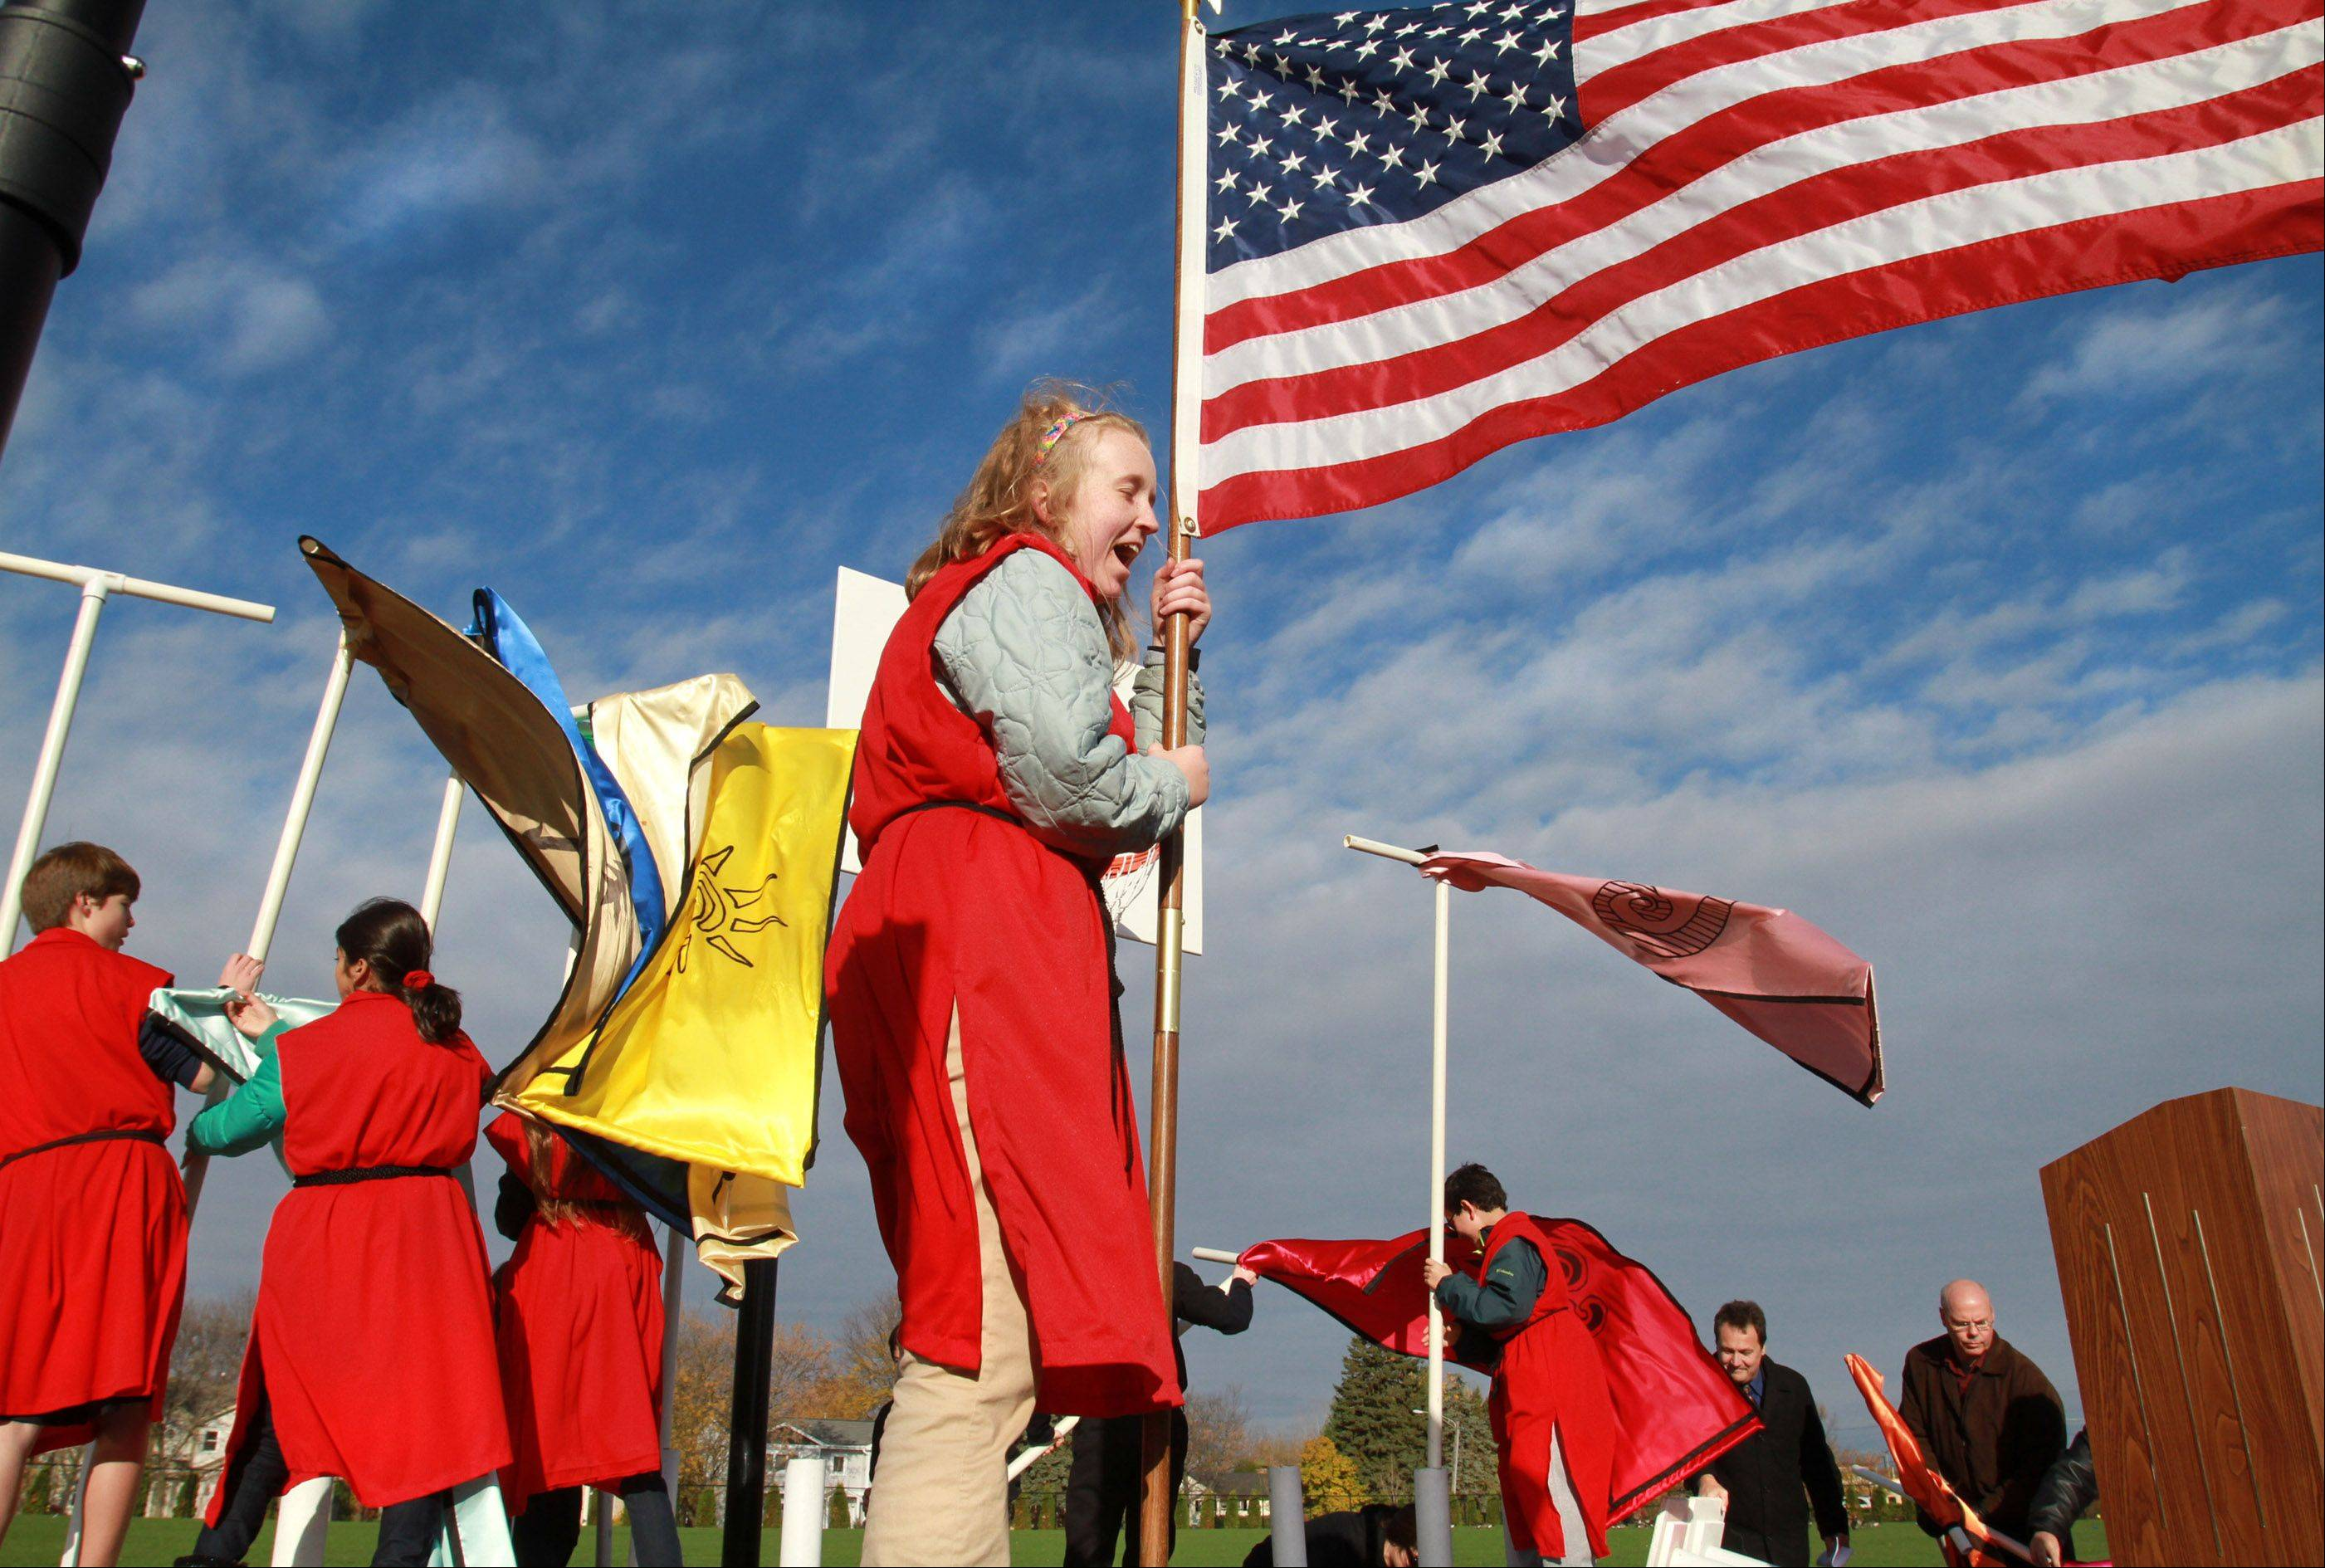 Hannah O'Brien, 14, eight-grader at Quest Academy, raises to and grips the American flag as a wind gust toppled banners and flags onstage at the school's ribbon-cutting and preview ceremony for its 3.68-acre outdoor West Campus in Palatine on Thursday, October 18. All Quest students, faculty, administration, about 200 parents, and Palatine Mayor Mr. Jim Schwantz attended.